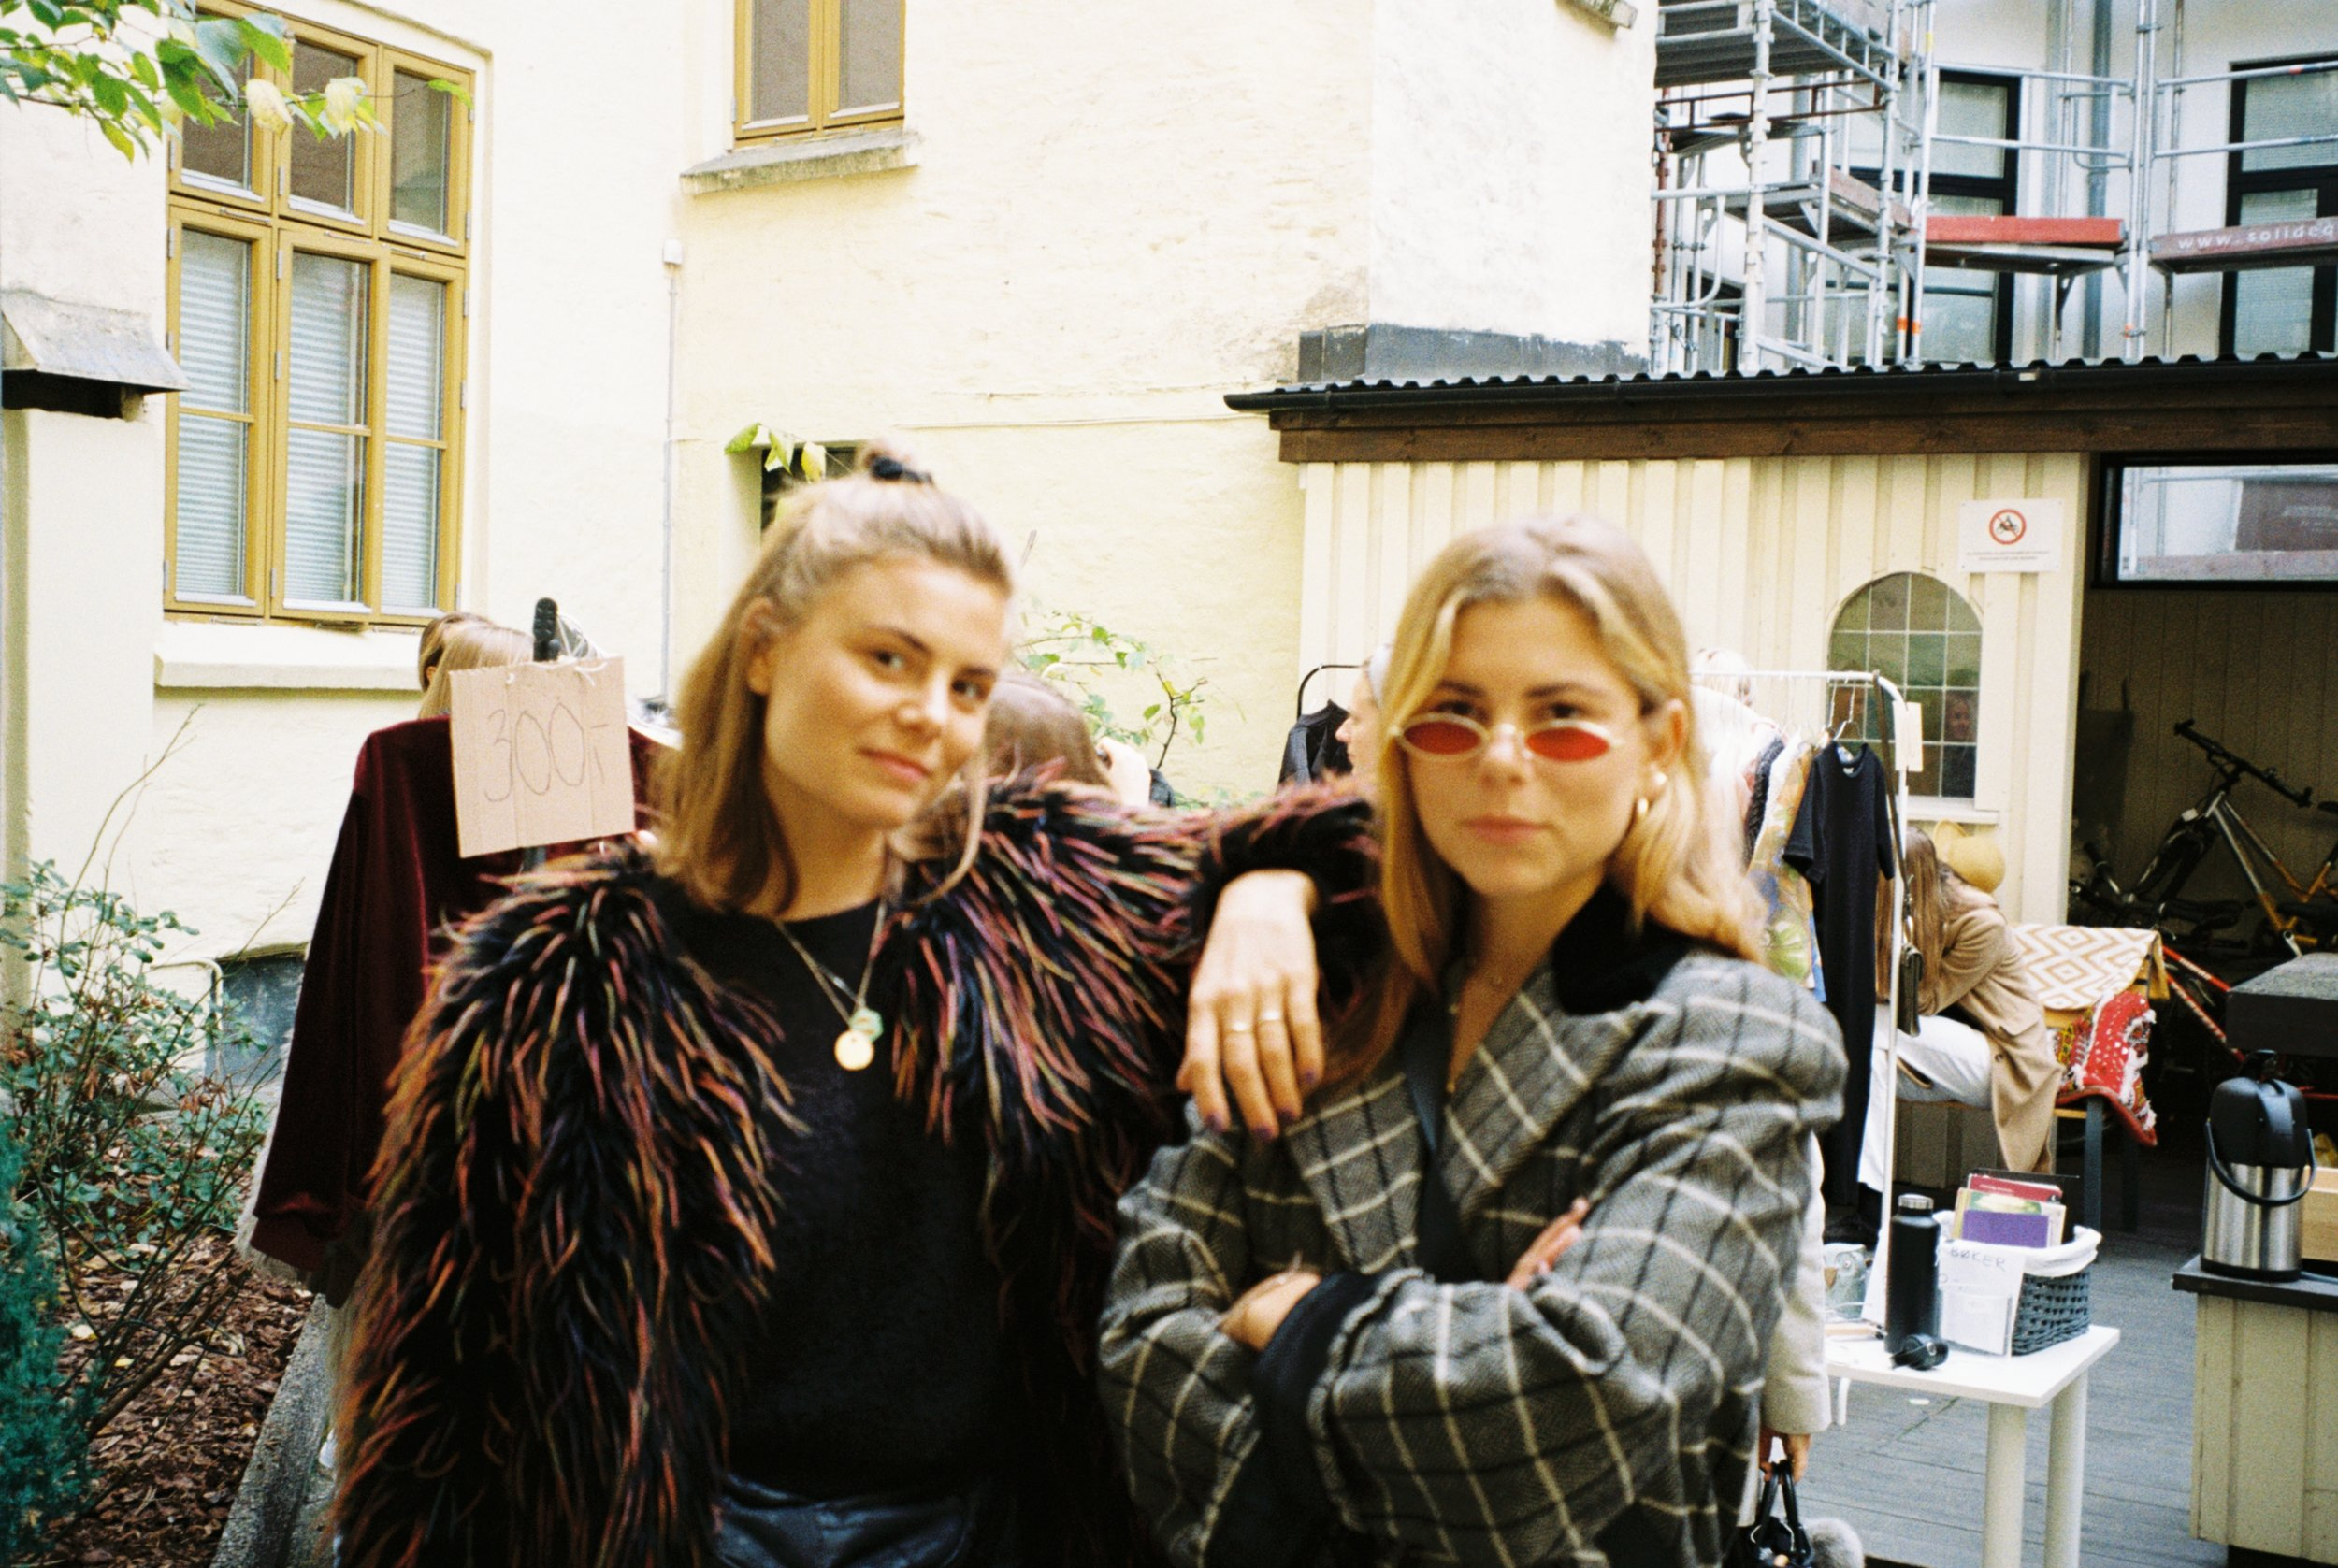 Photo: Marlene Sæthre. Susanne (left) and Anette (right) looking effortlessly cool at a vintage market.